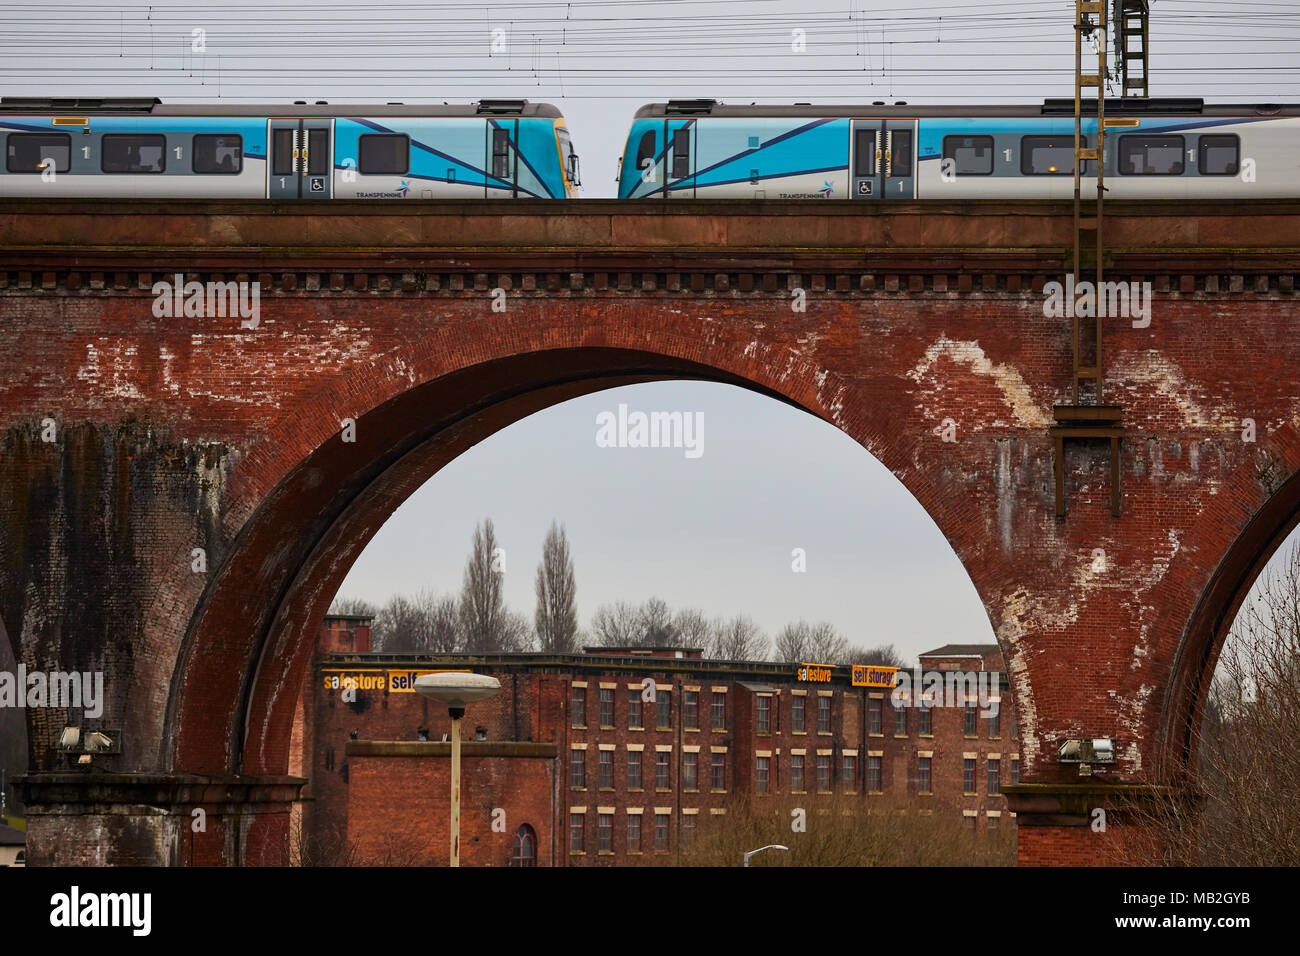 Stockport in Cheshire Gtr Manchester a TransPennine Express operating company owned by FirstGroup franchise. train crossing the landmark brick viaduct - Stock Image